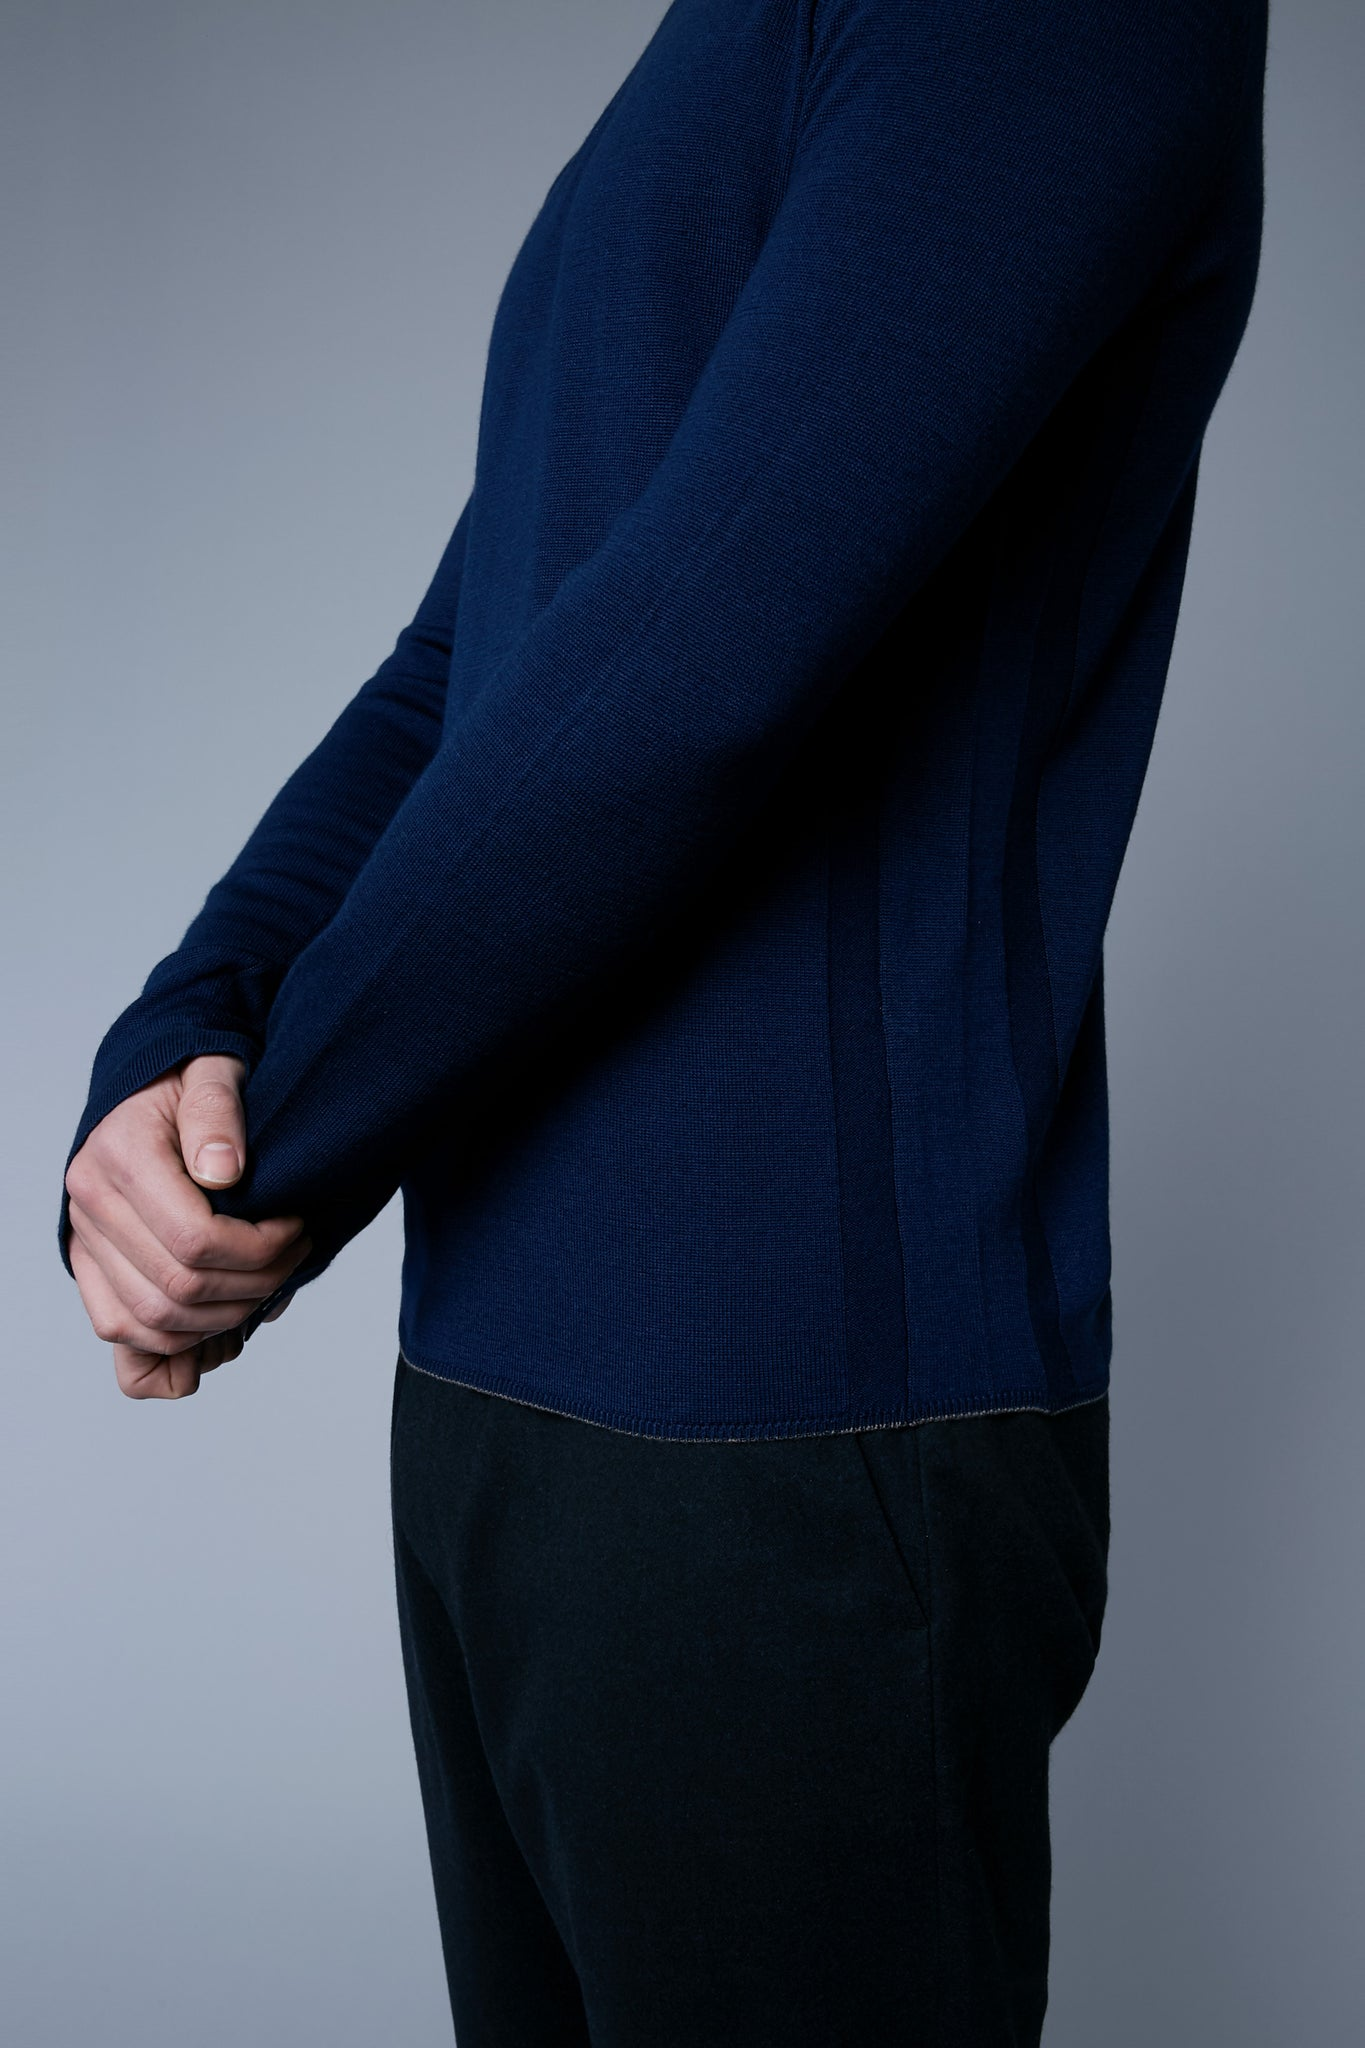 Detail View: Model Milos Drago wearing Long Sleeve Sweater Tee